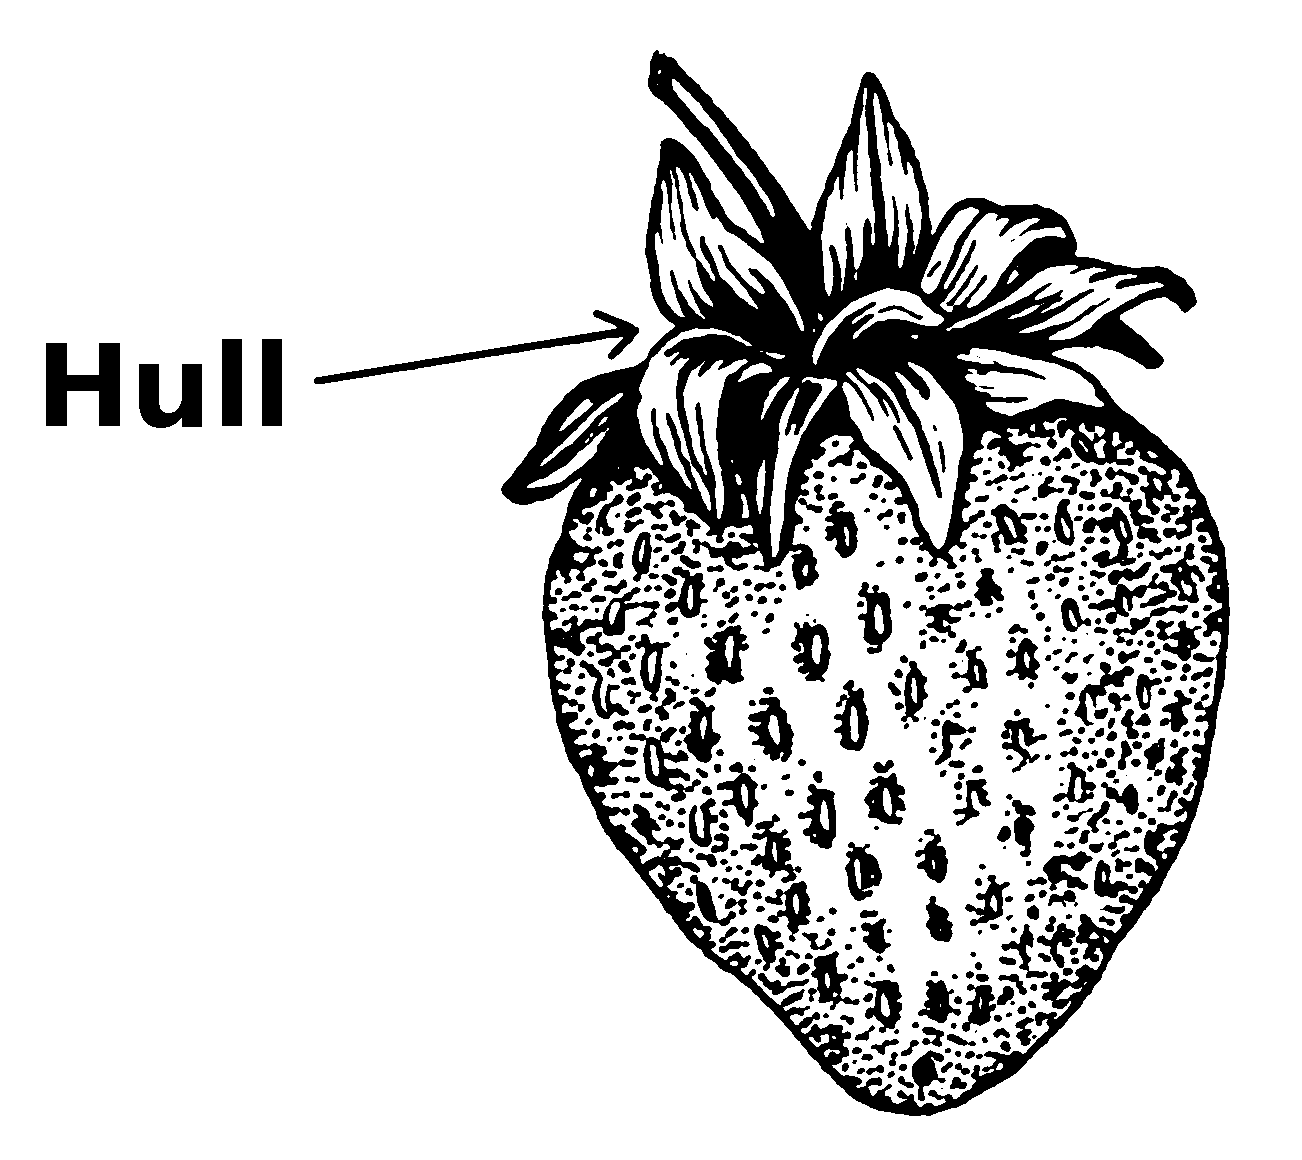 Hull clipart clip art black and white download File:Hull (PSF).png - Wikimedia Commons clip art black and white download